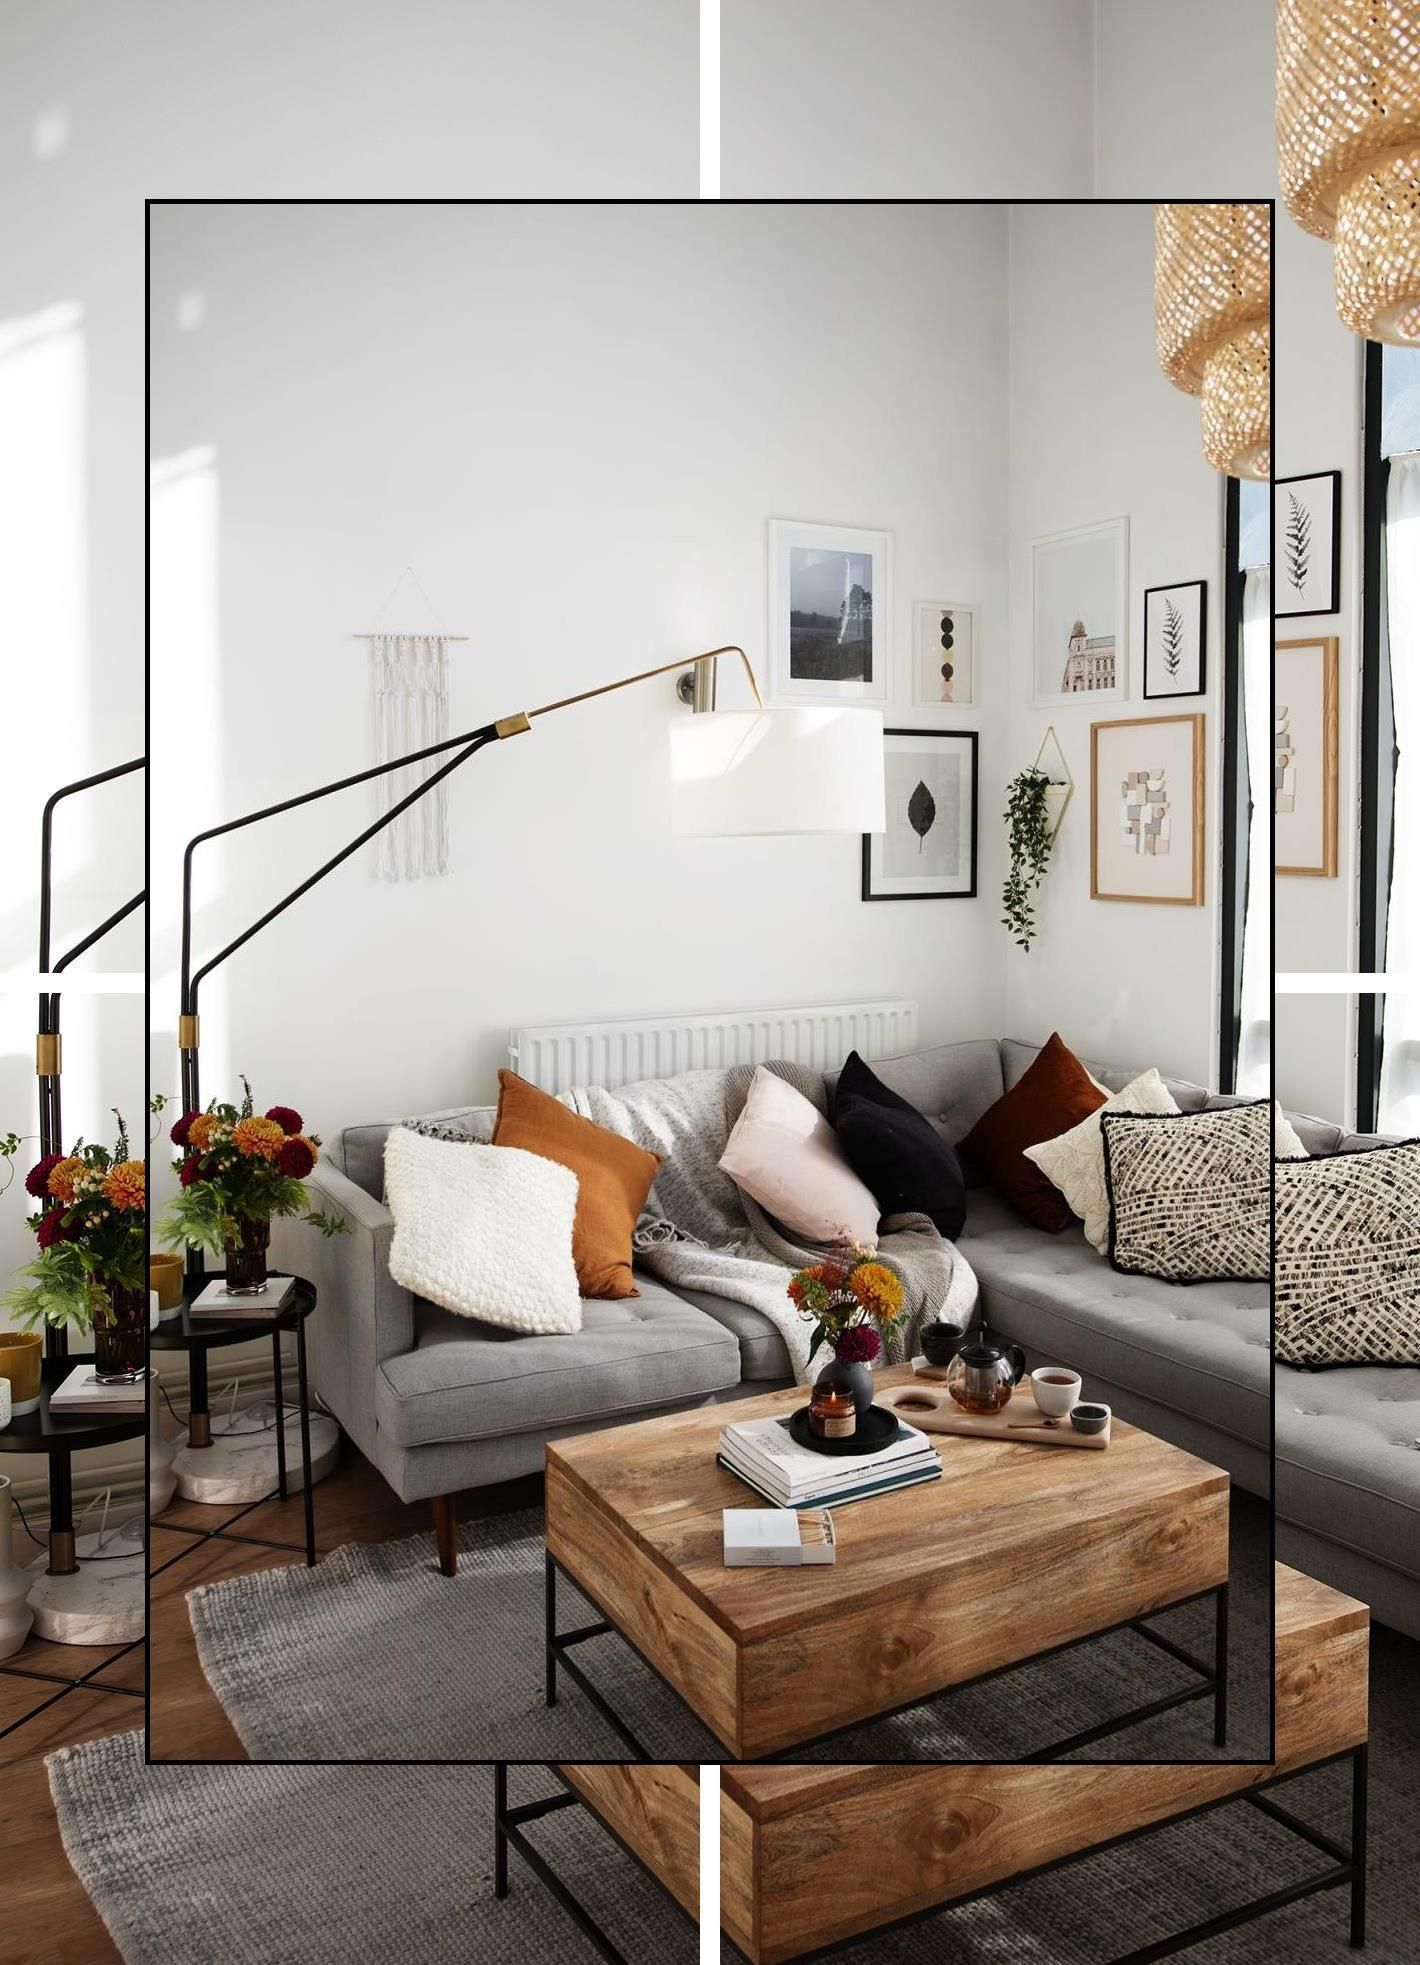 Design My Living Room House Drawing Room Designs Looking For Ideas To Decorate My Living Room Living Room Scandinavian Living Decor Appartment Decor Good looking drawing room